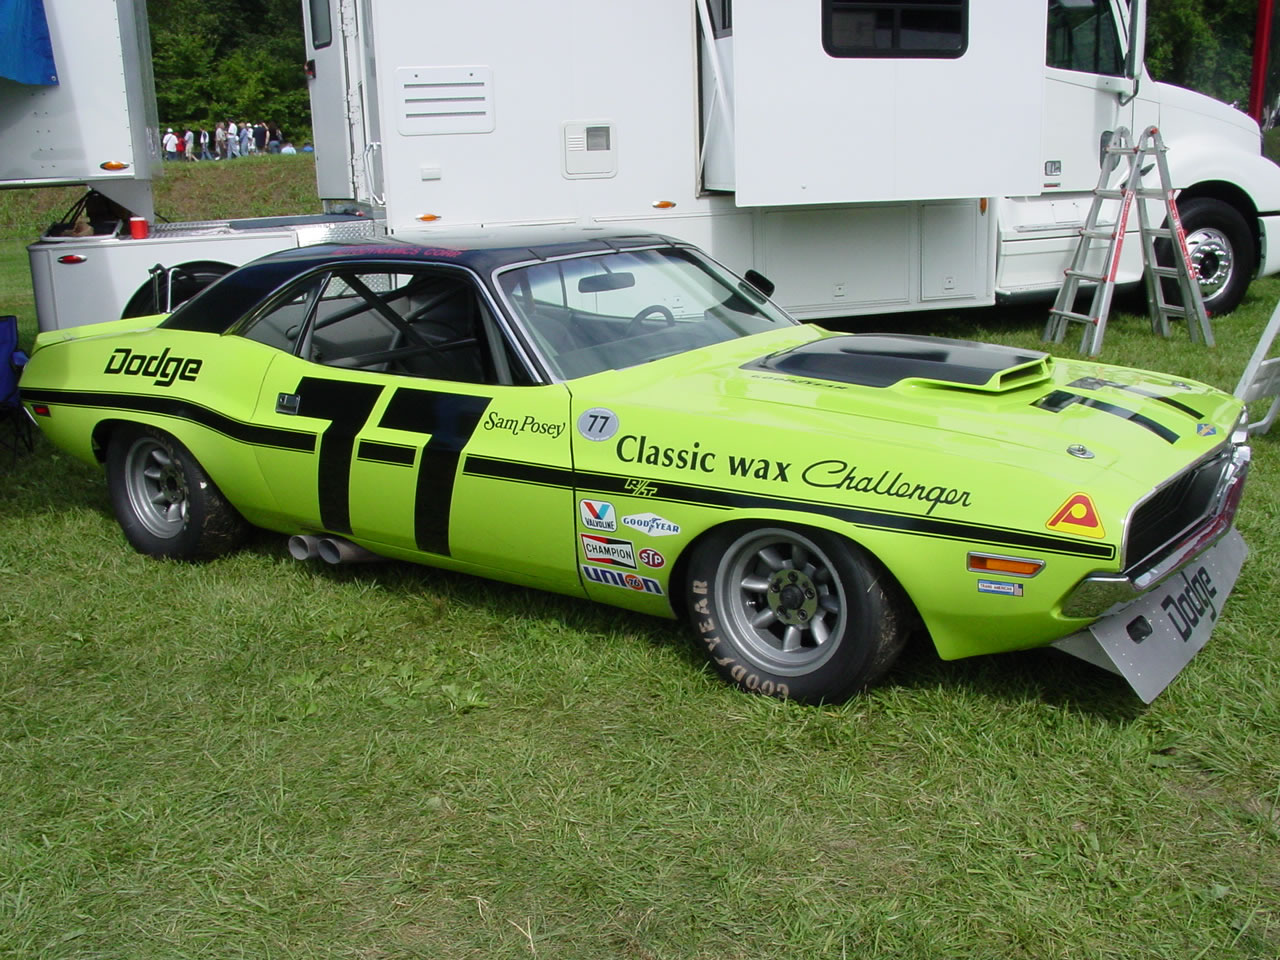 hello again we are looking for 1970 Sam's Posey Dodge Challenger Trans Am no